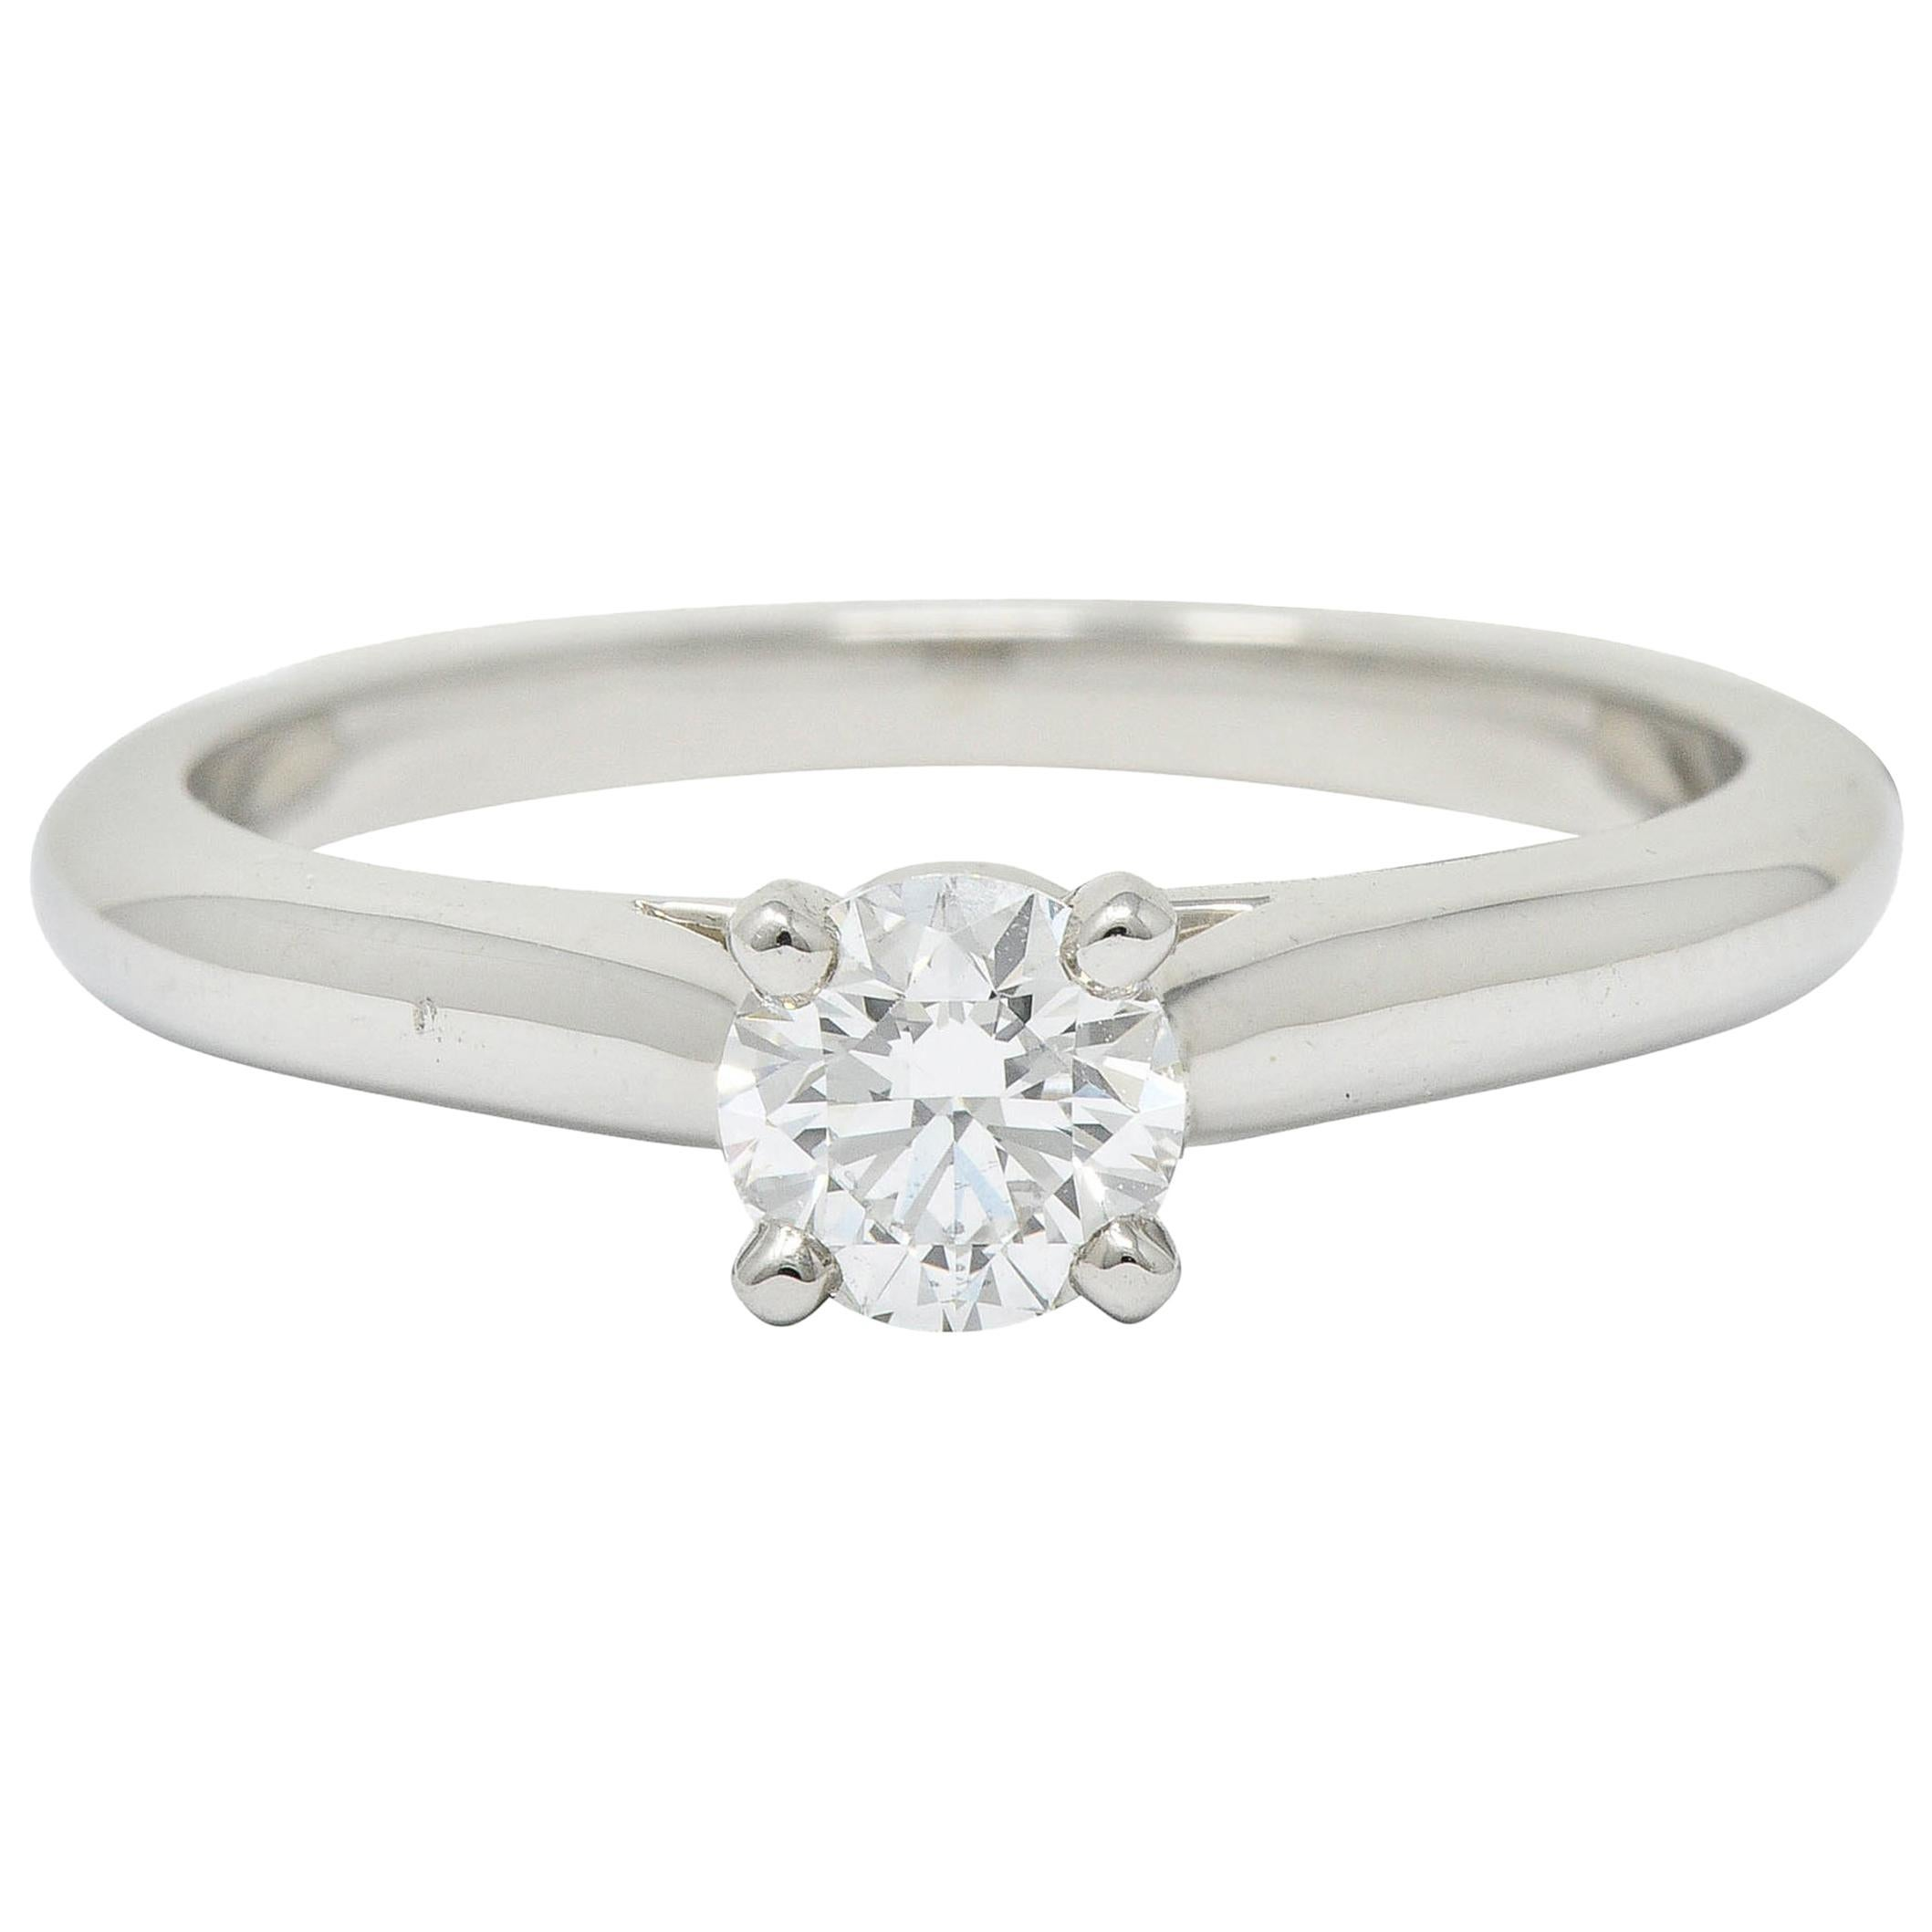 Cartier Platinum Cathedral Solitaire Round Brilliant Diamond Engagement Ring